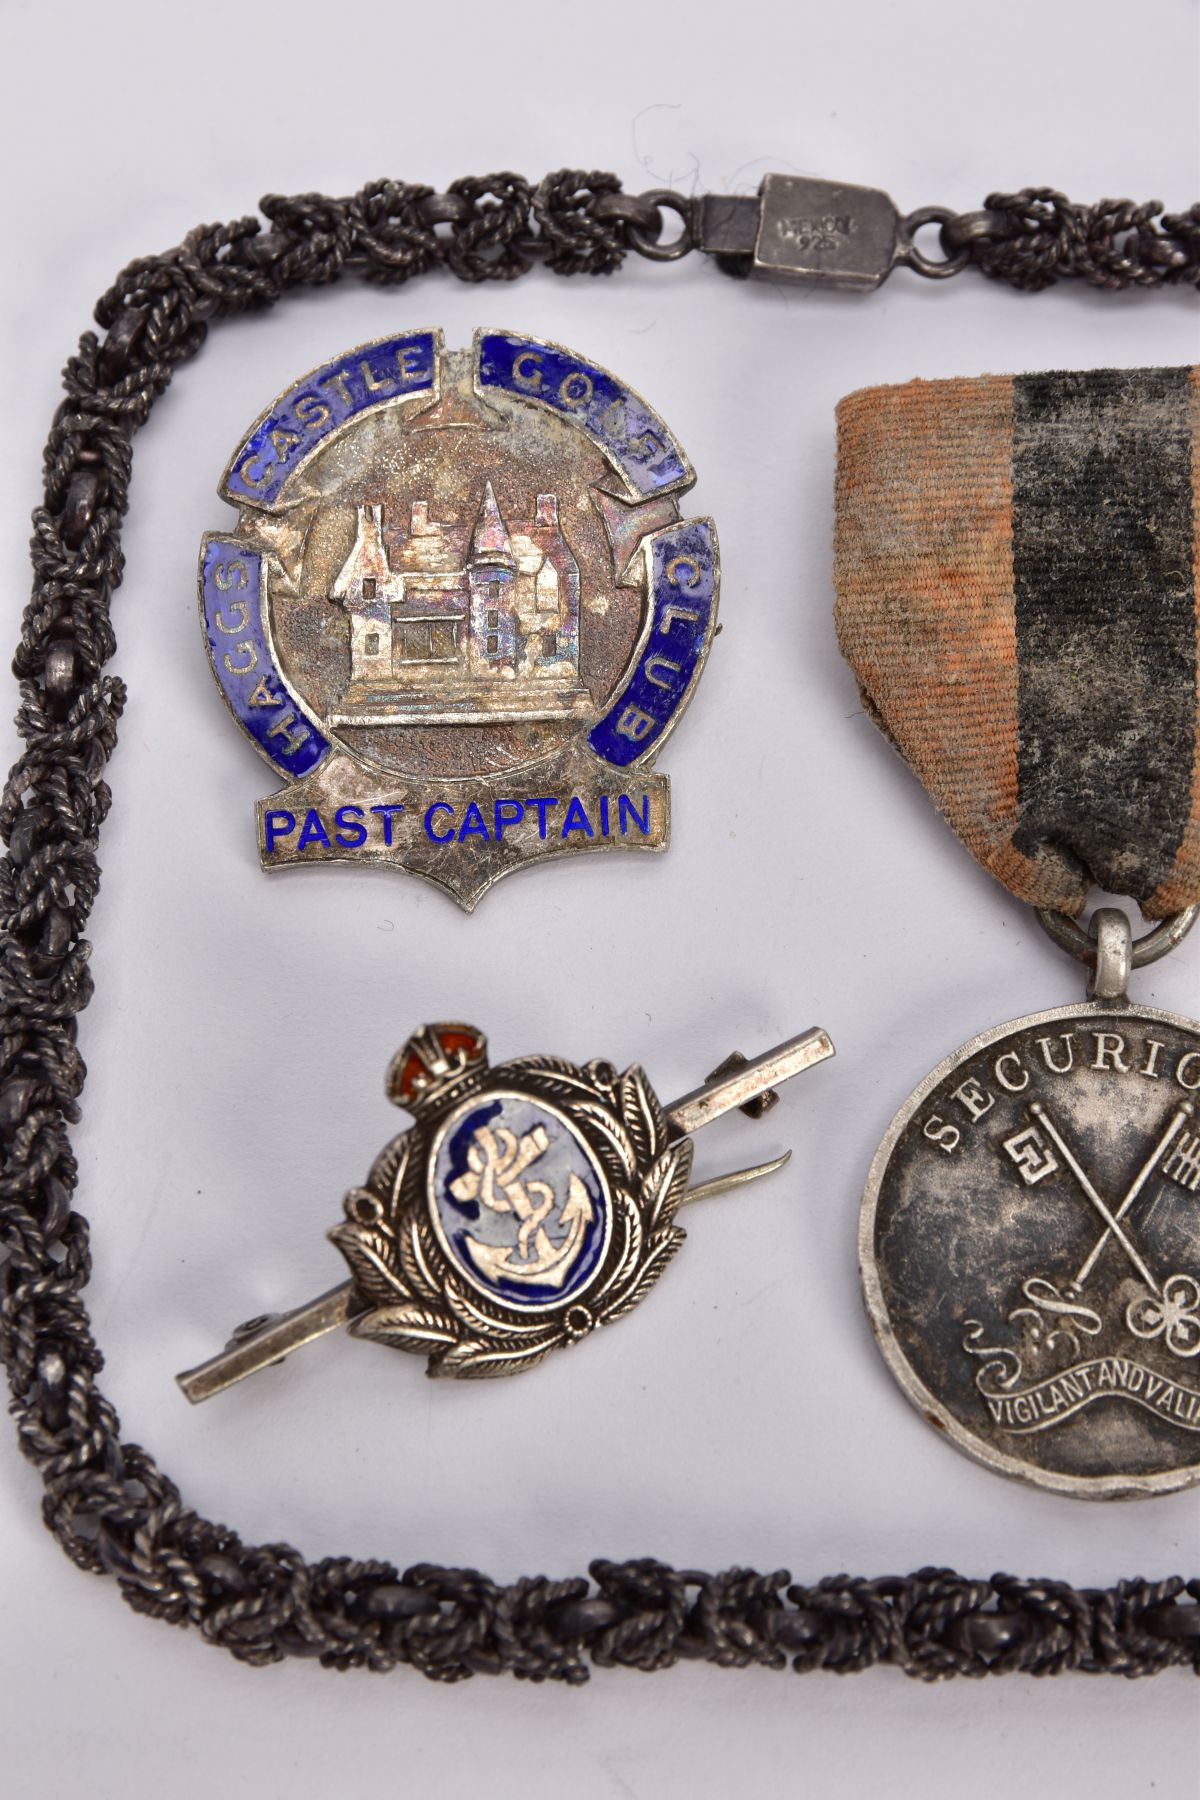 A STAMPED MEXICO 925 NECK CHAIN, tarnished, Haggs Castle Gold Club past captain badge (hallmarked) - Image 2 of 4